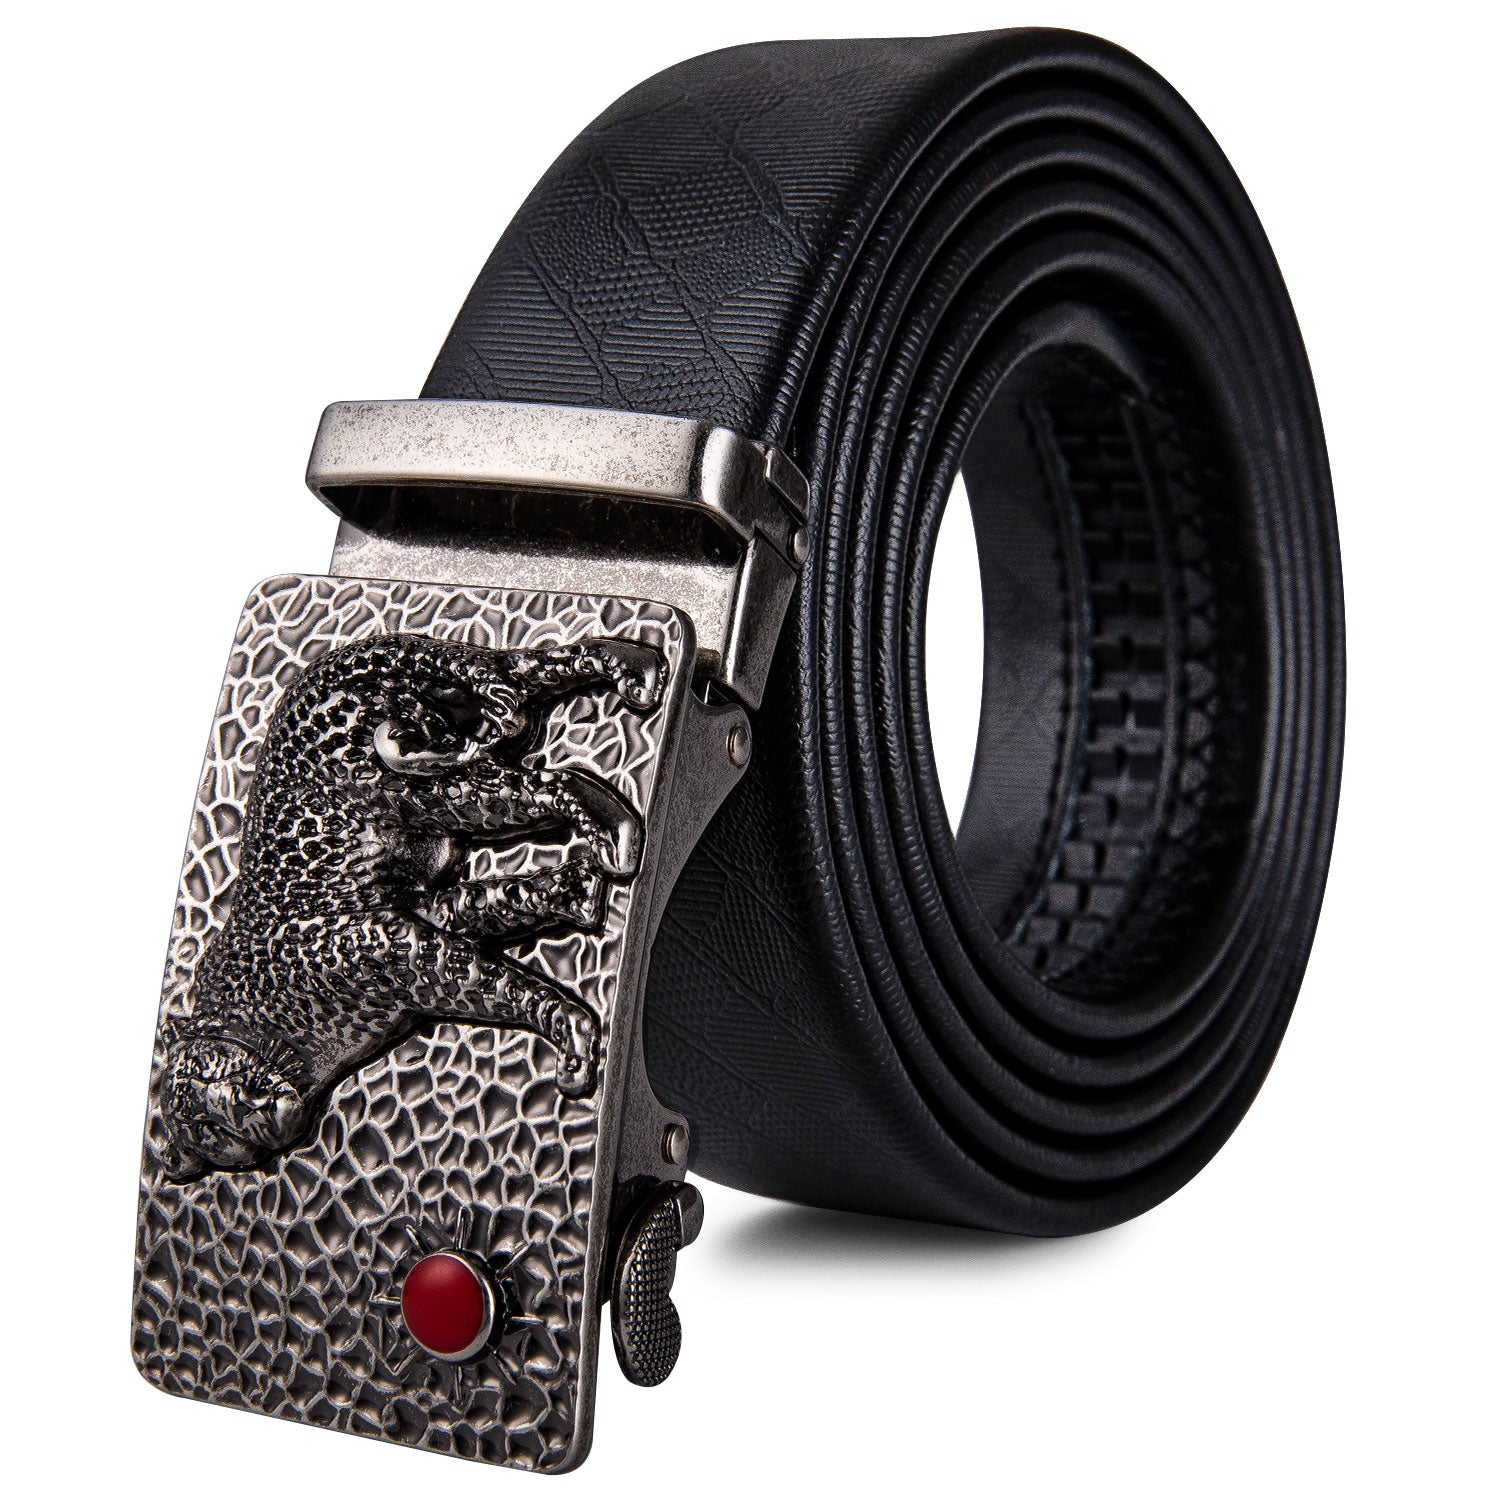 MENS LEATHER BELT FOR JEANS TROUSERS IN BROWN CASUALS PARTY WEAR 100/% GENUINE